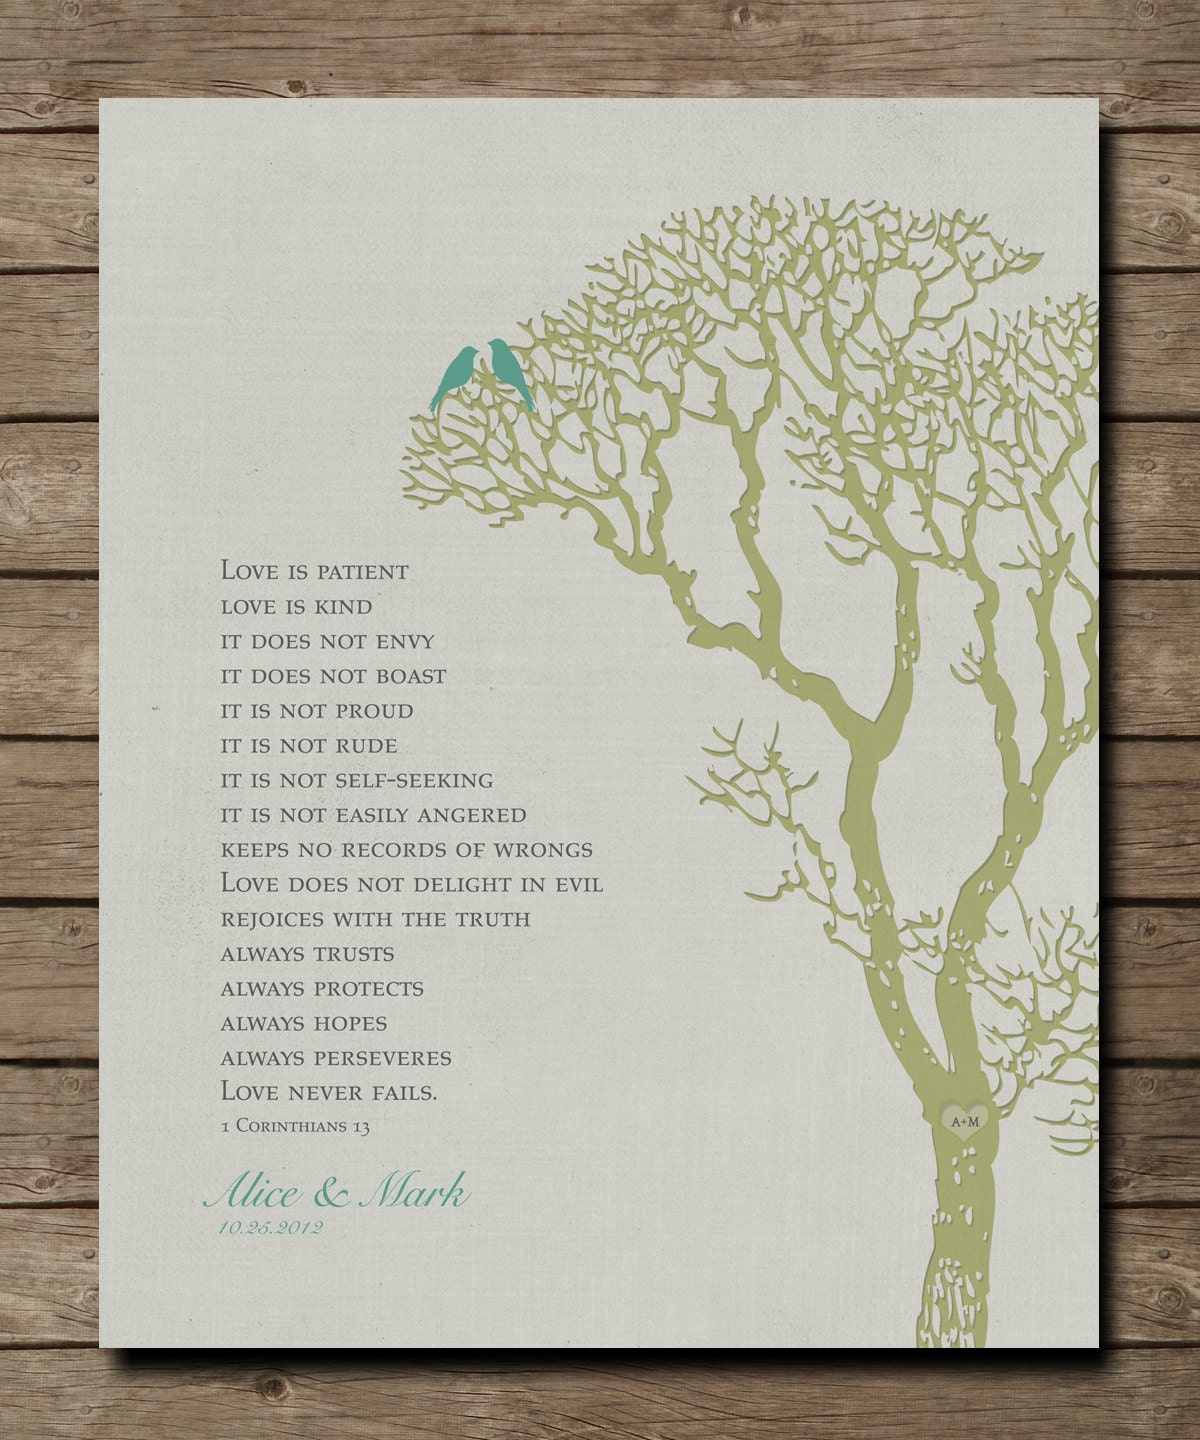 Bible Verses For Wedding Gift Card : ... bible verses love displaying 19 images for marriage bible verses love